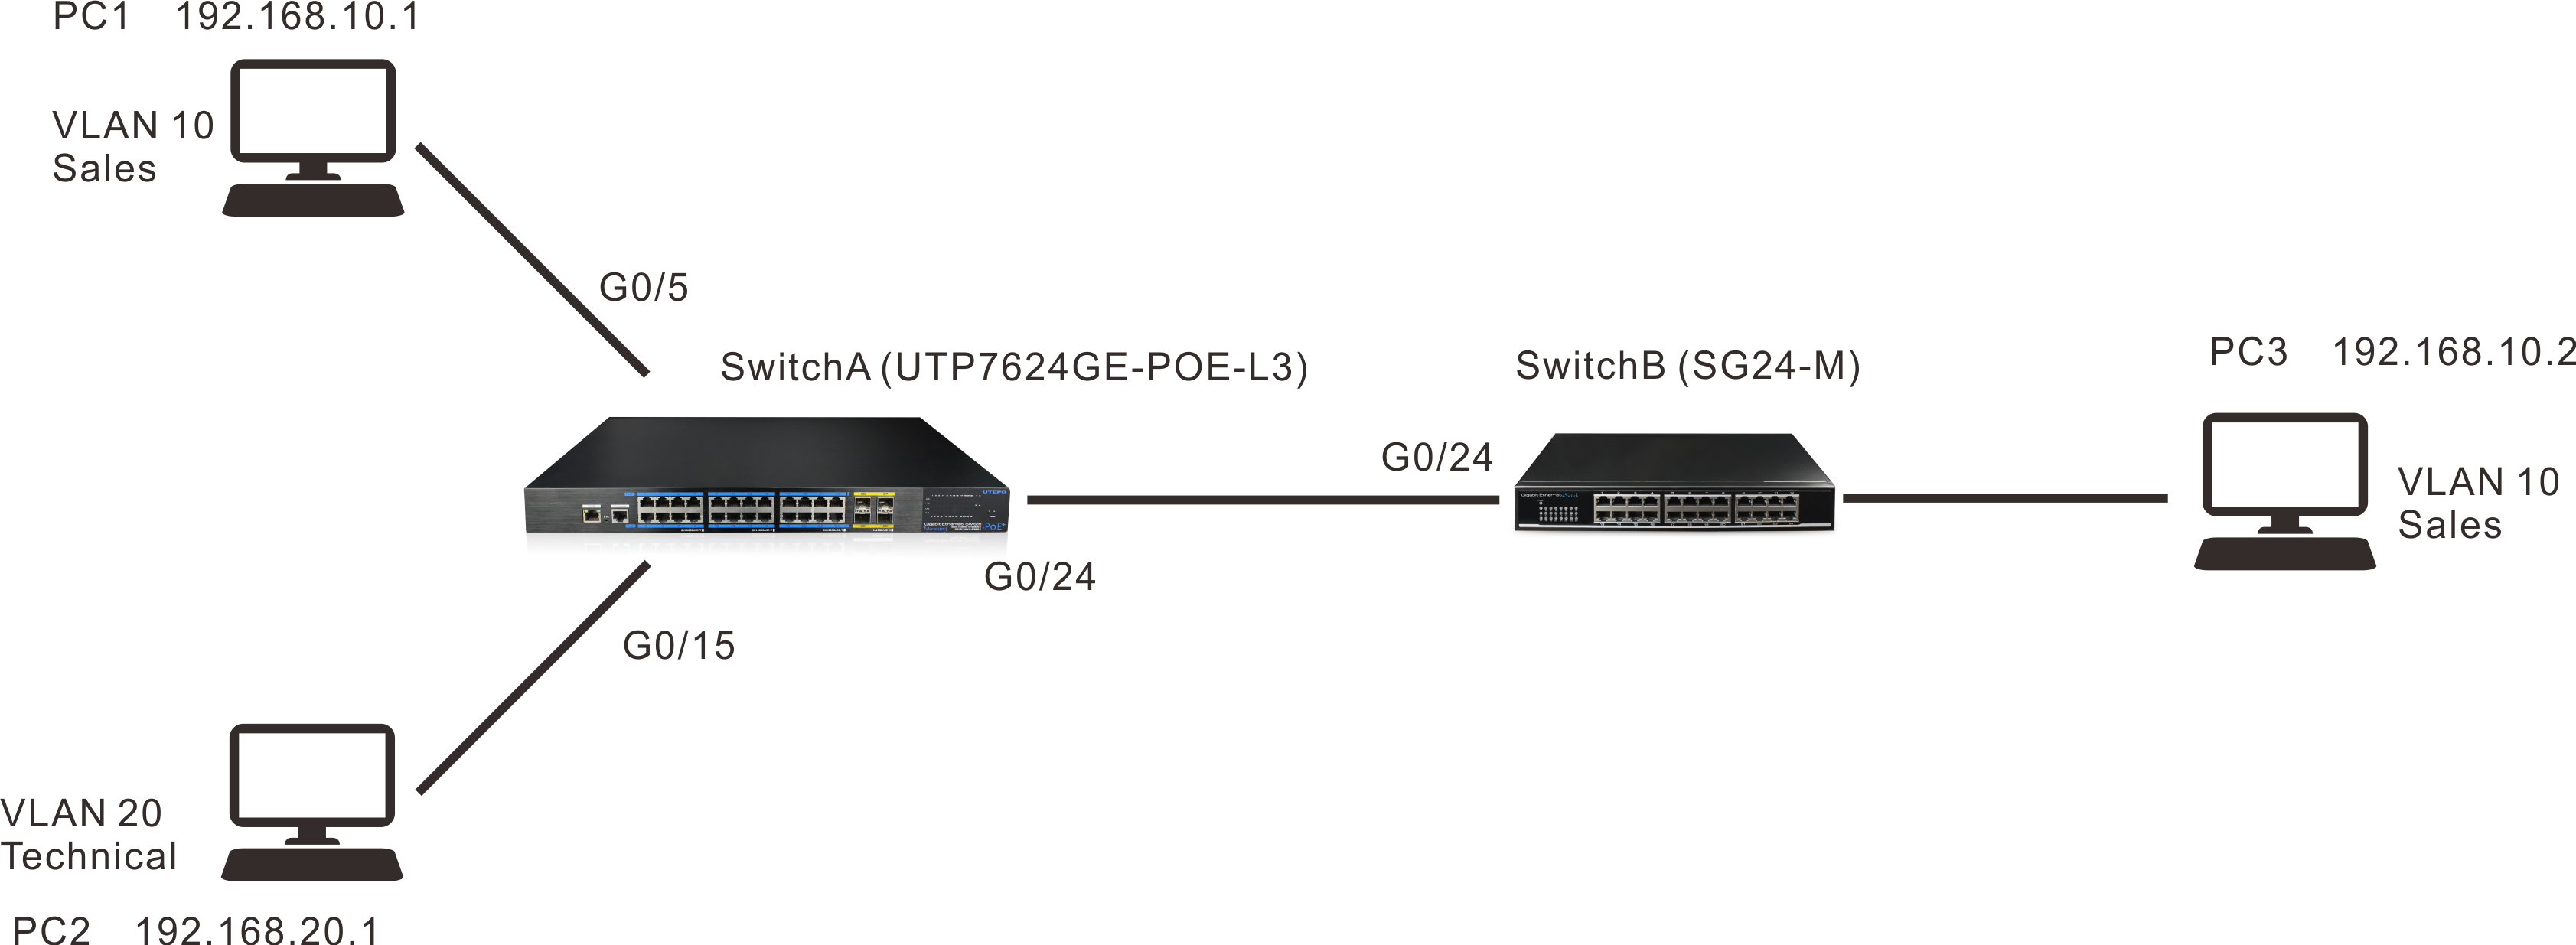 layer 3 poe switch